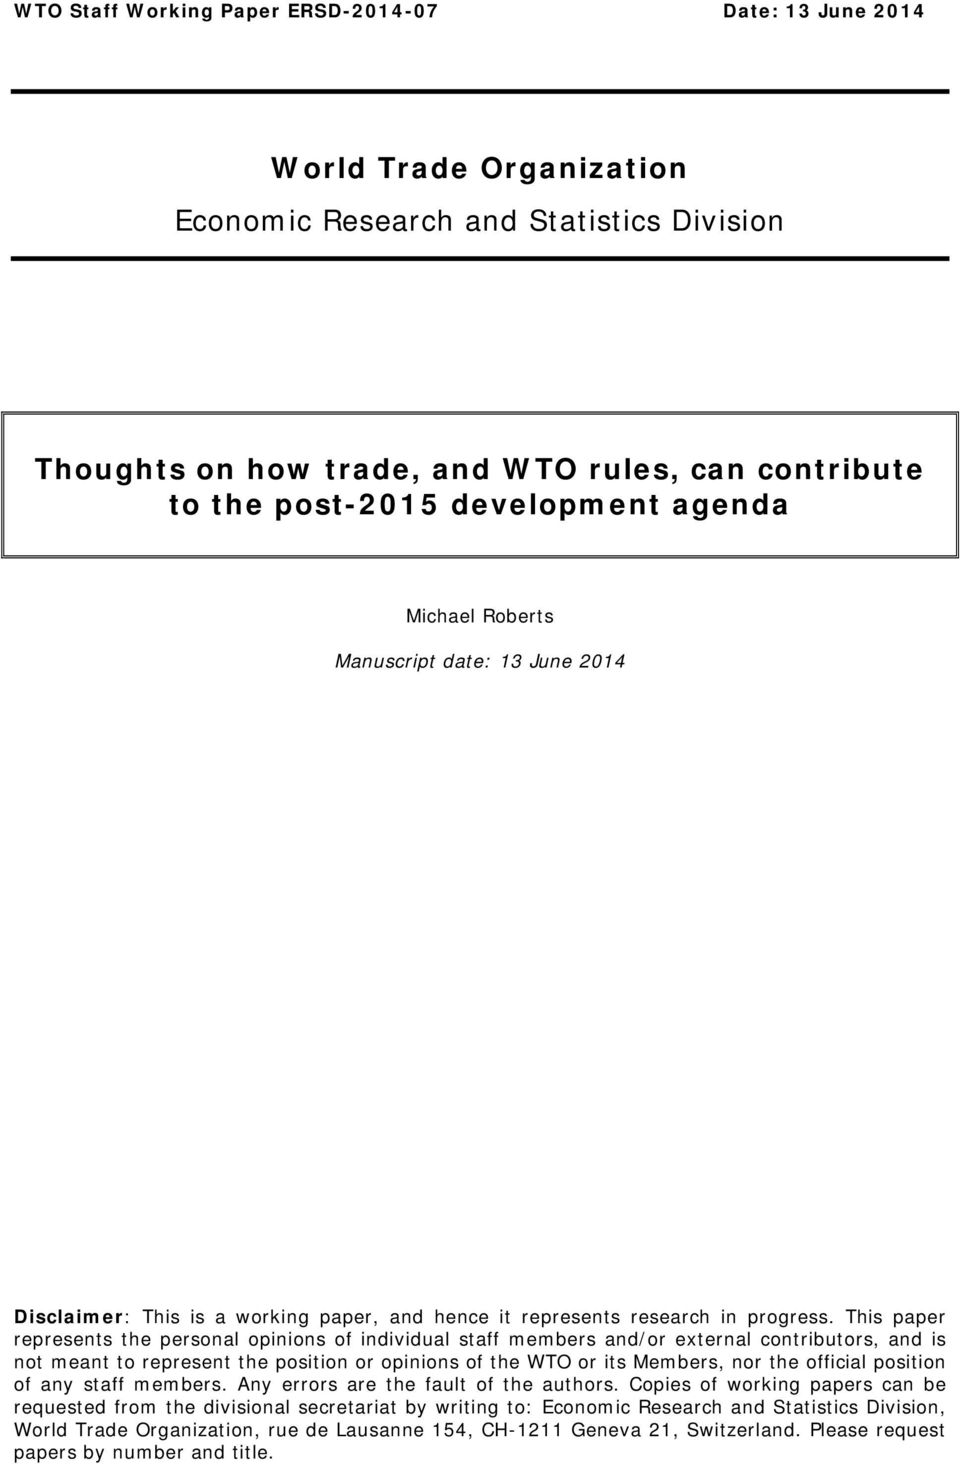 This paper represents the personal opinions of individual staff members and/or external contributors, and is not meant to represent the position or opinions of the WTO or its Members, nor the